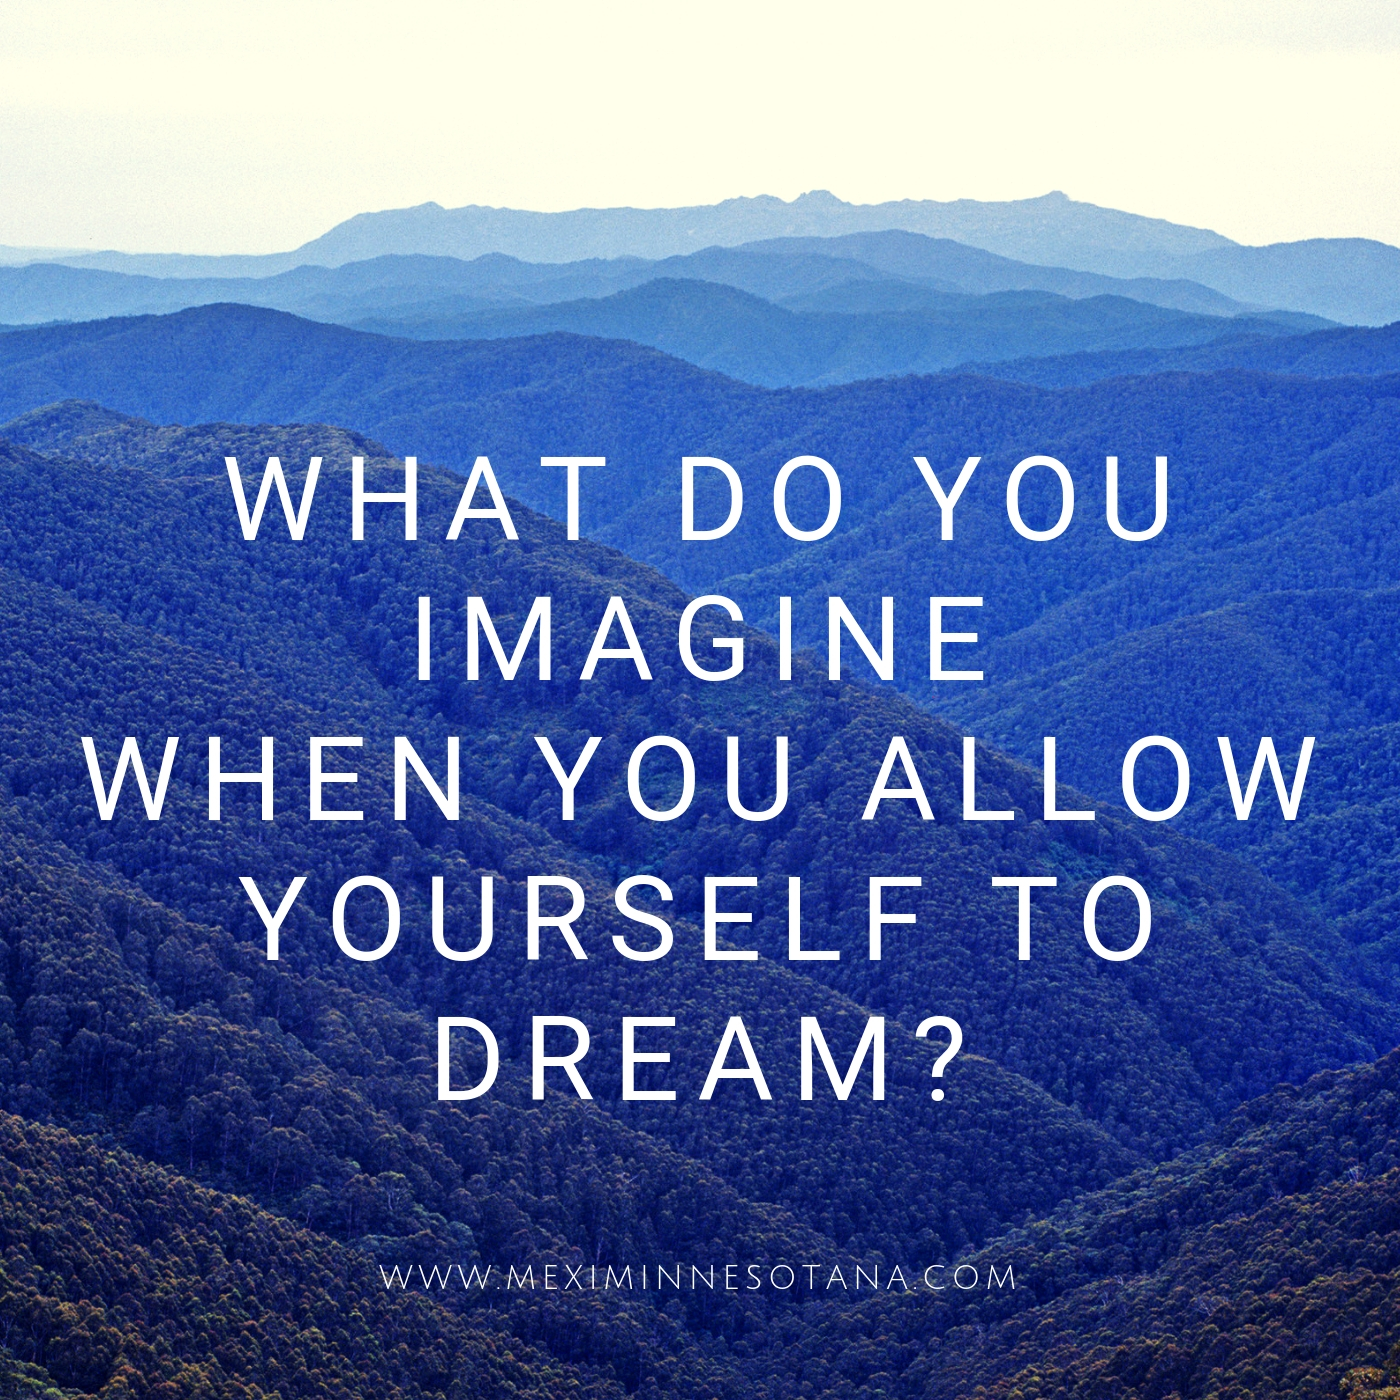 imagine and dream.jpg